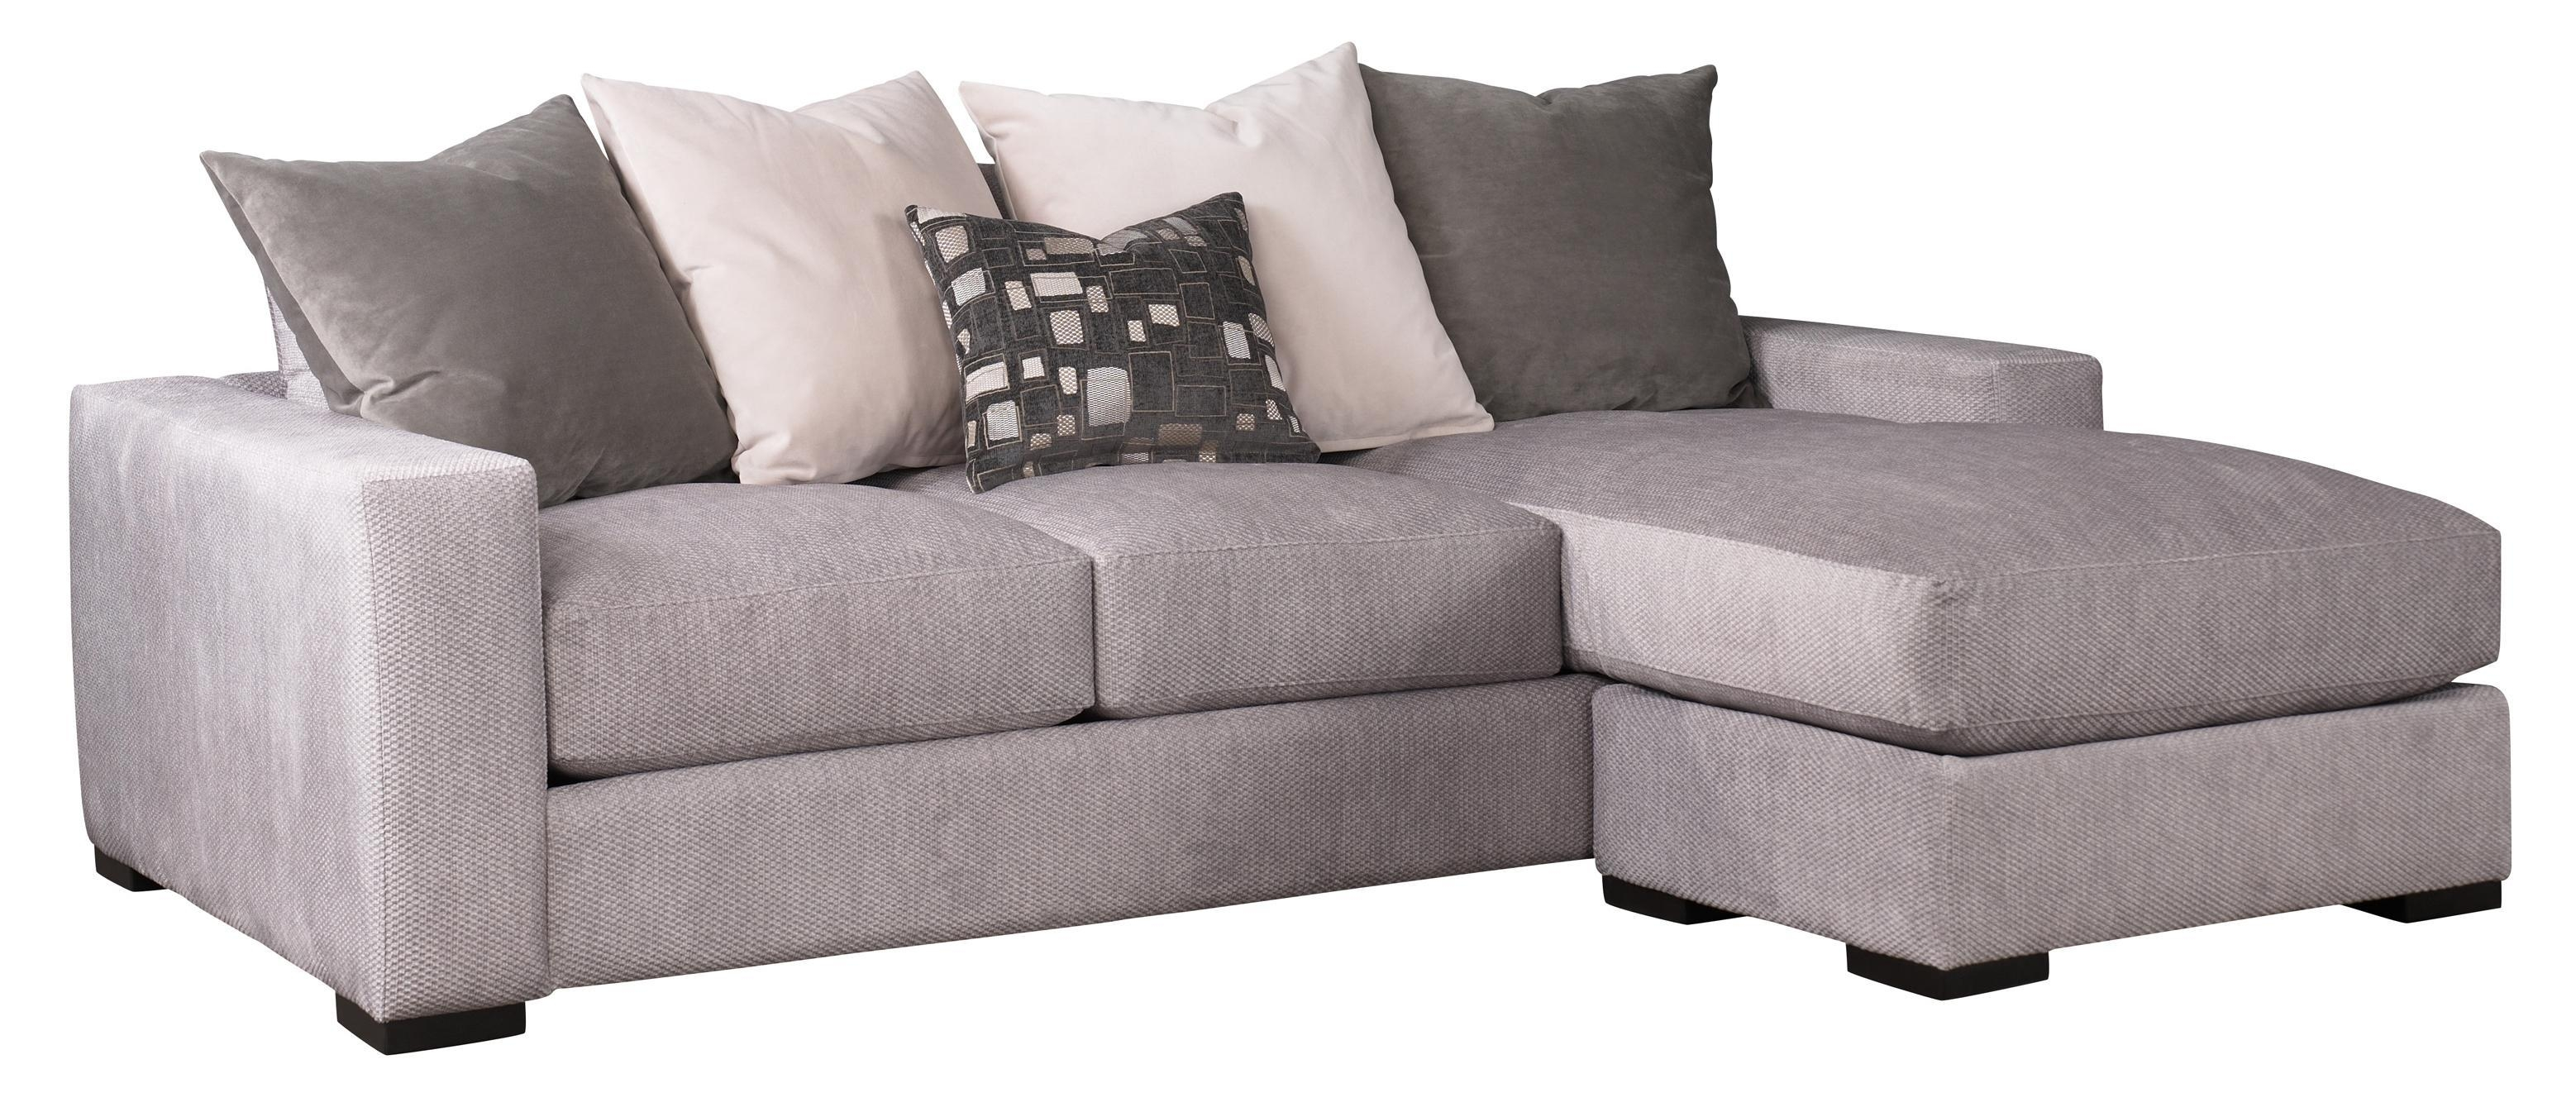 Jonathan Louis Lombardy Contemporary Sofa W/ Reversible Chaise Regarding Jonathan Louis Sectional (Image 16 of 20)